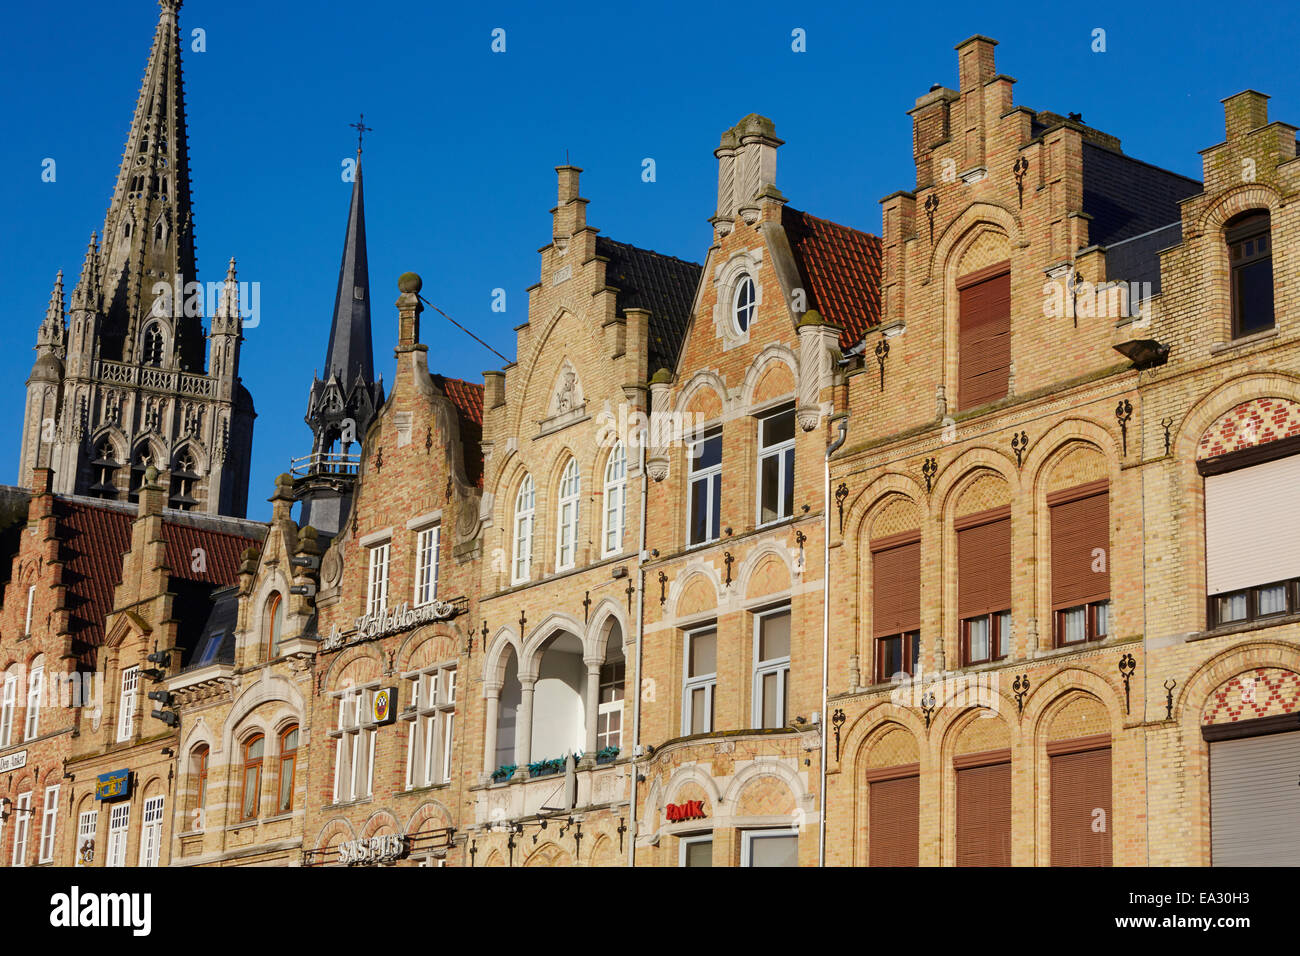 Cathedral spire and Flemish houses in Ypres, West Flanders, Belgium, Europe - Stock Image